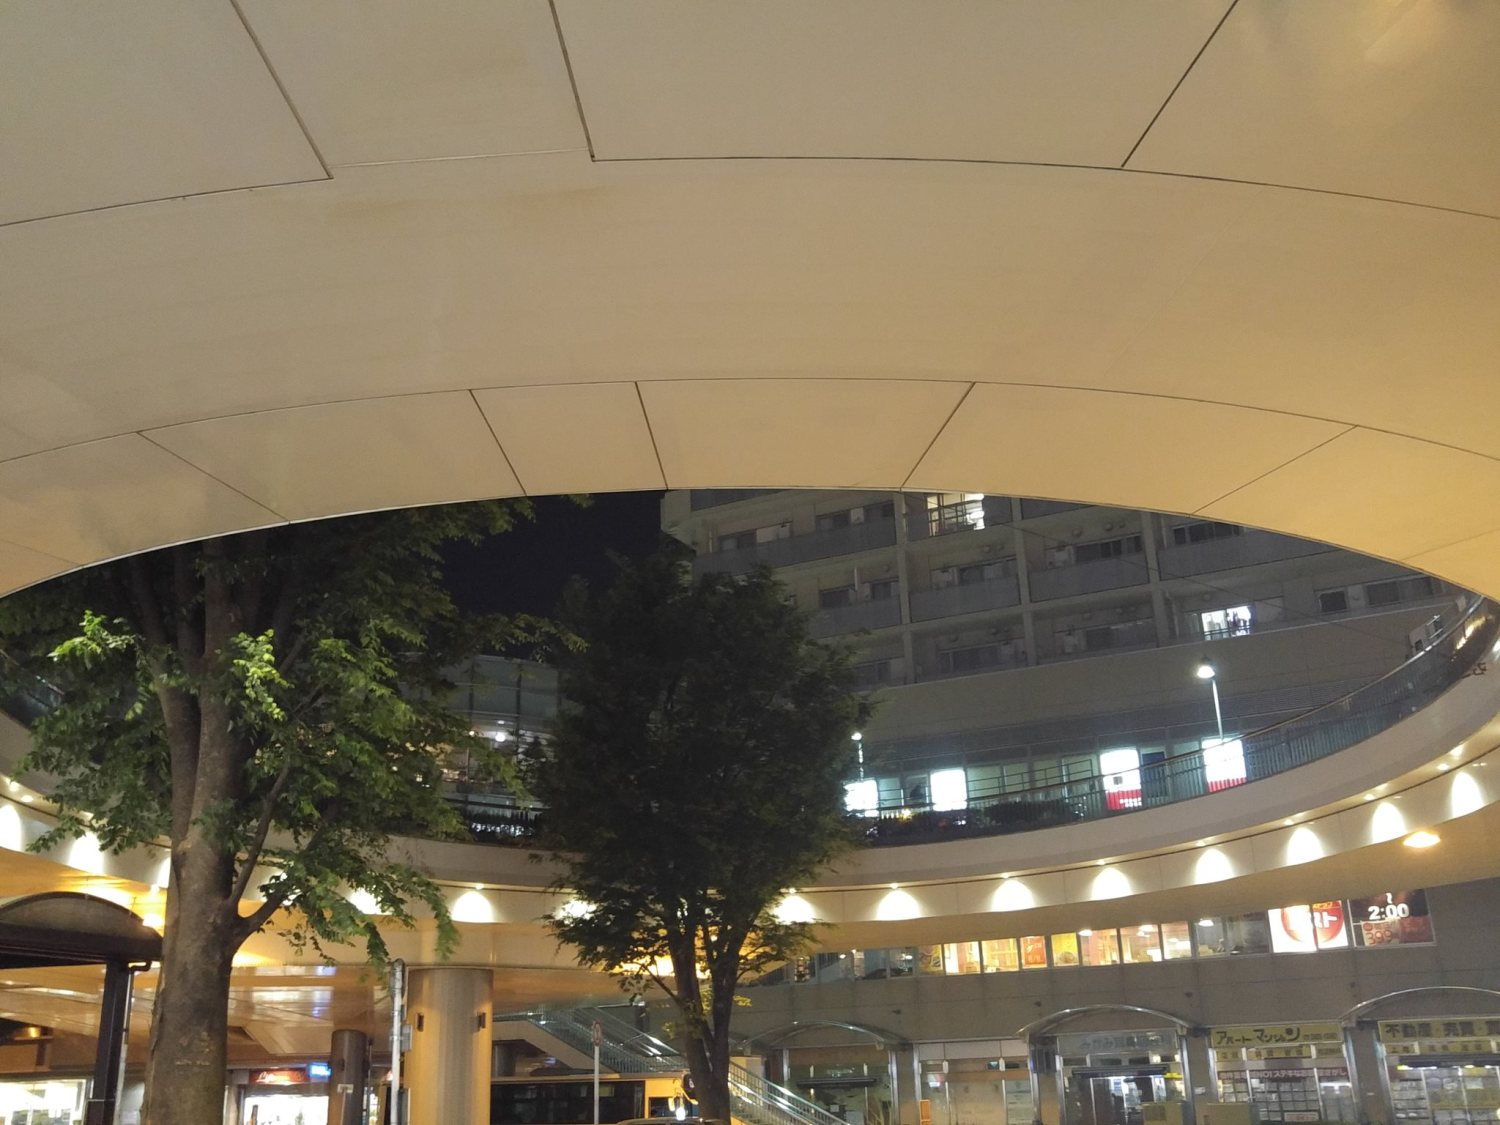 The south exit rotary of Oizumi-Gakuen Station